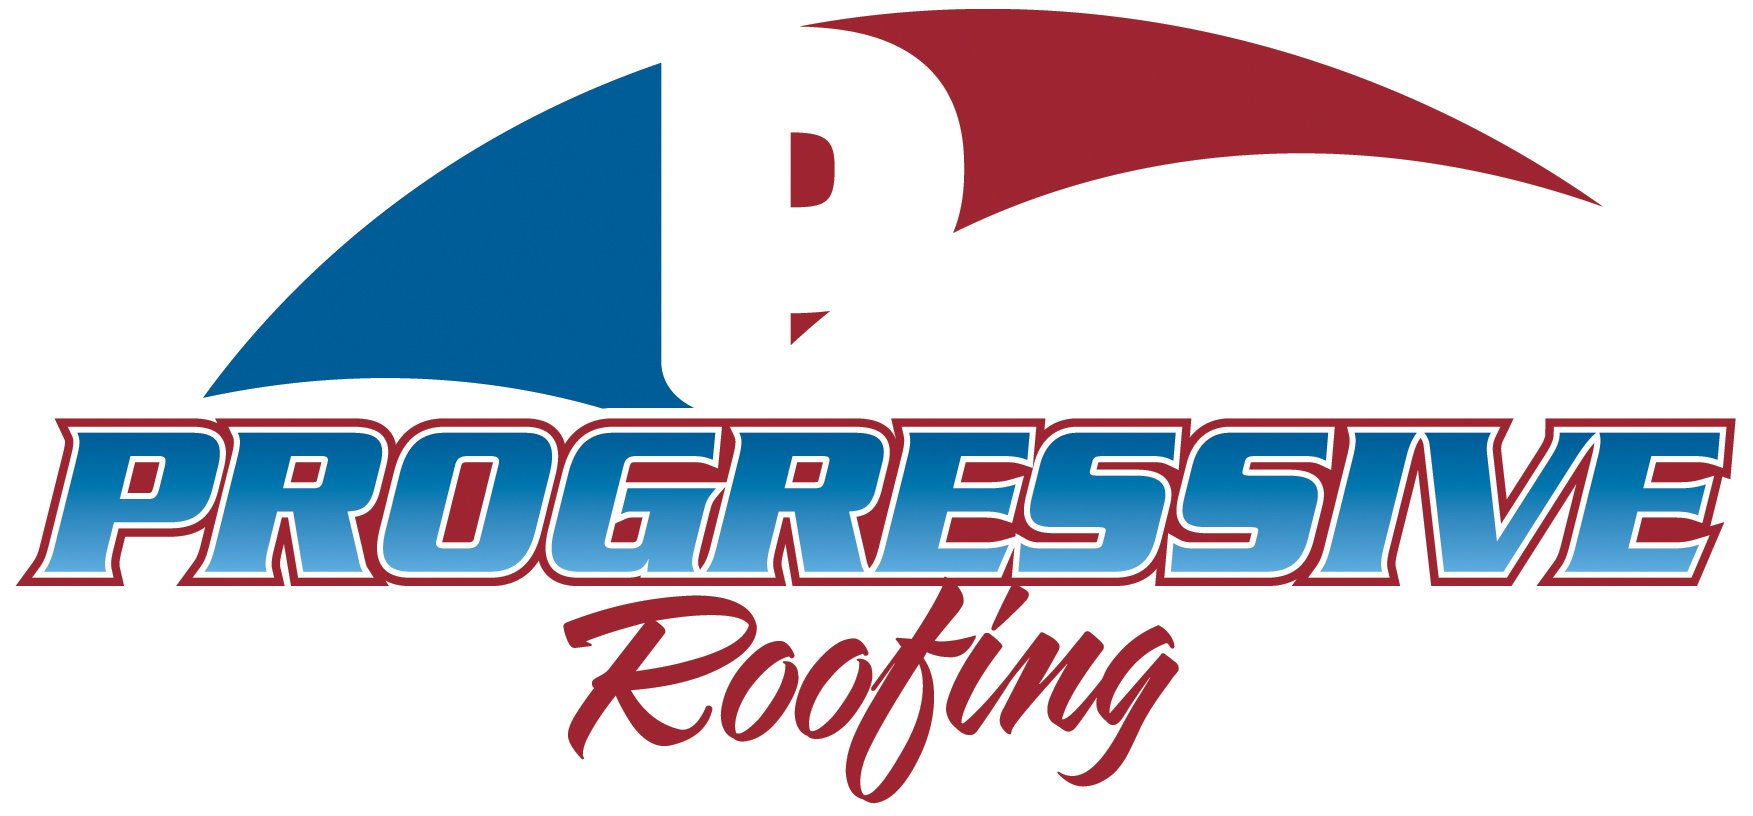 Tar And Gravel Roofing Services In Carlton Pa